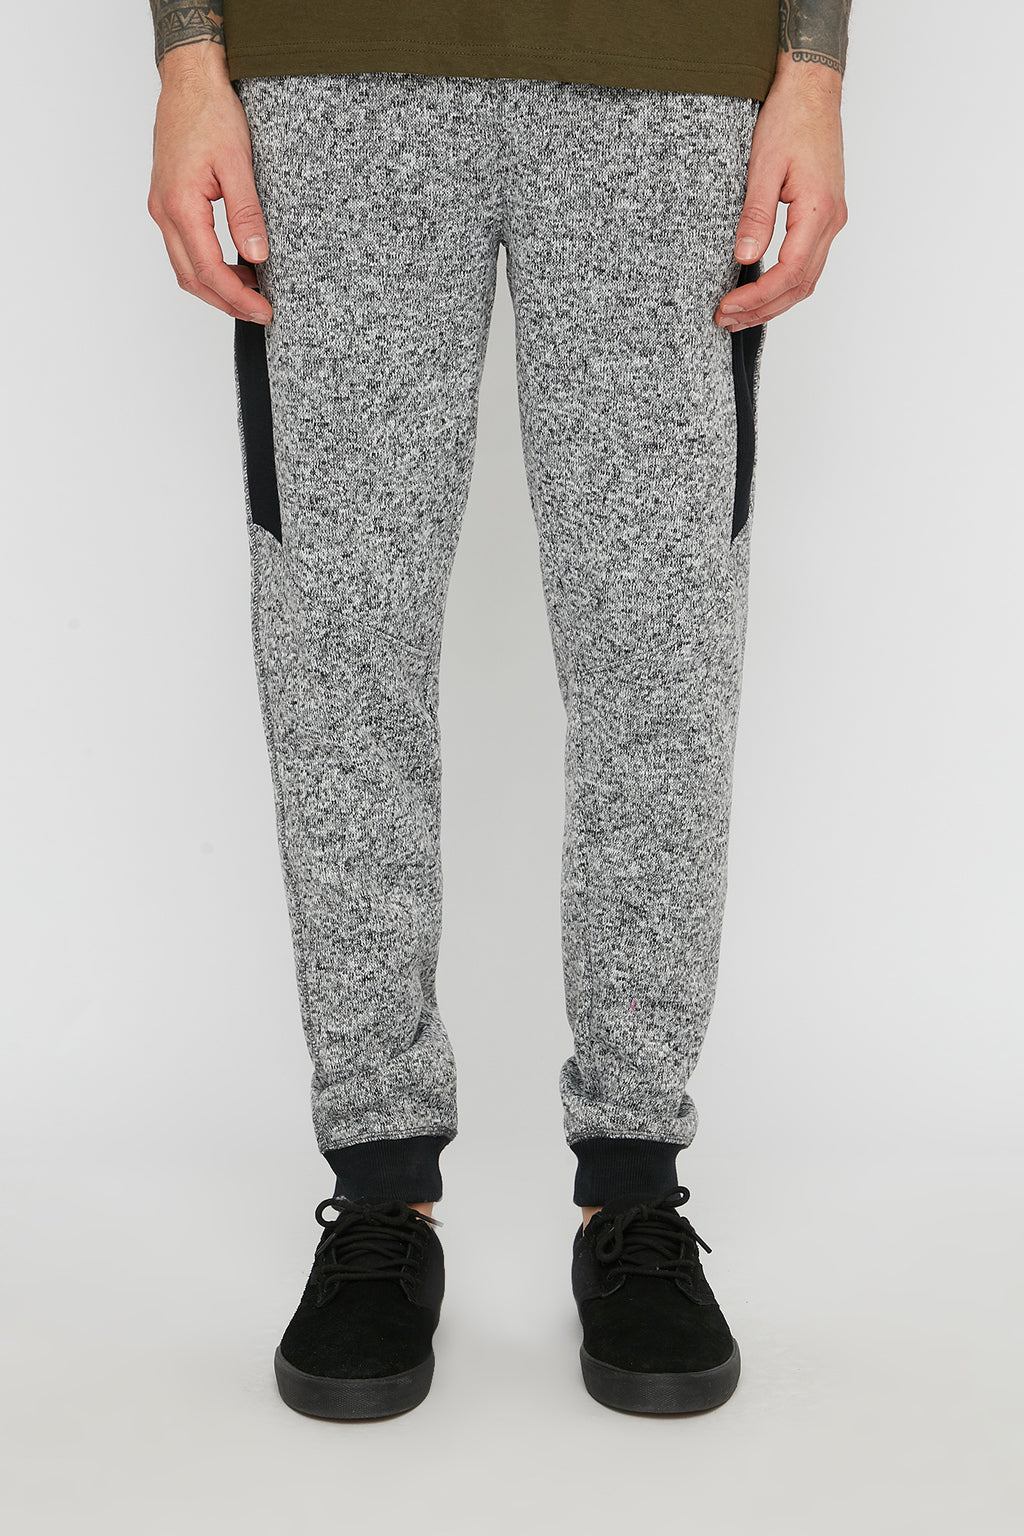 West49 Mens Side Tape Sweatpants